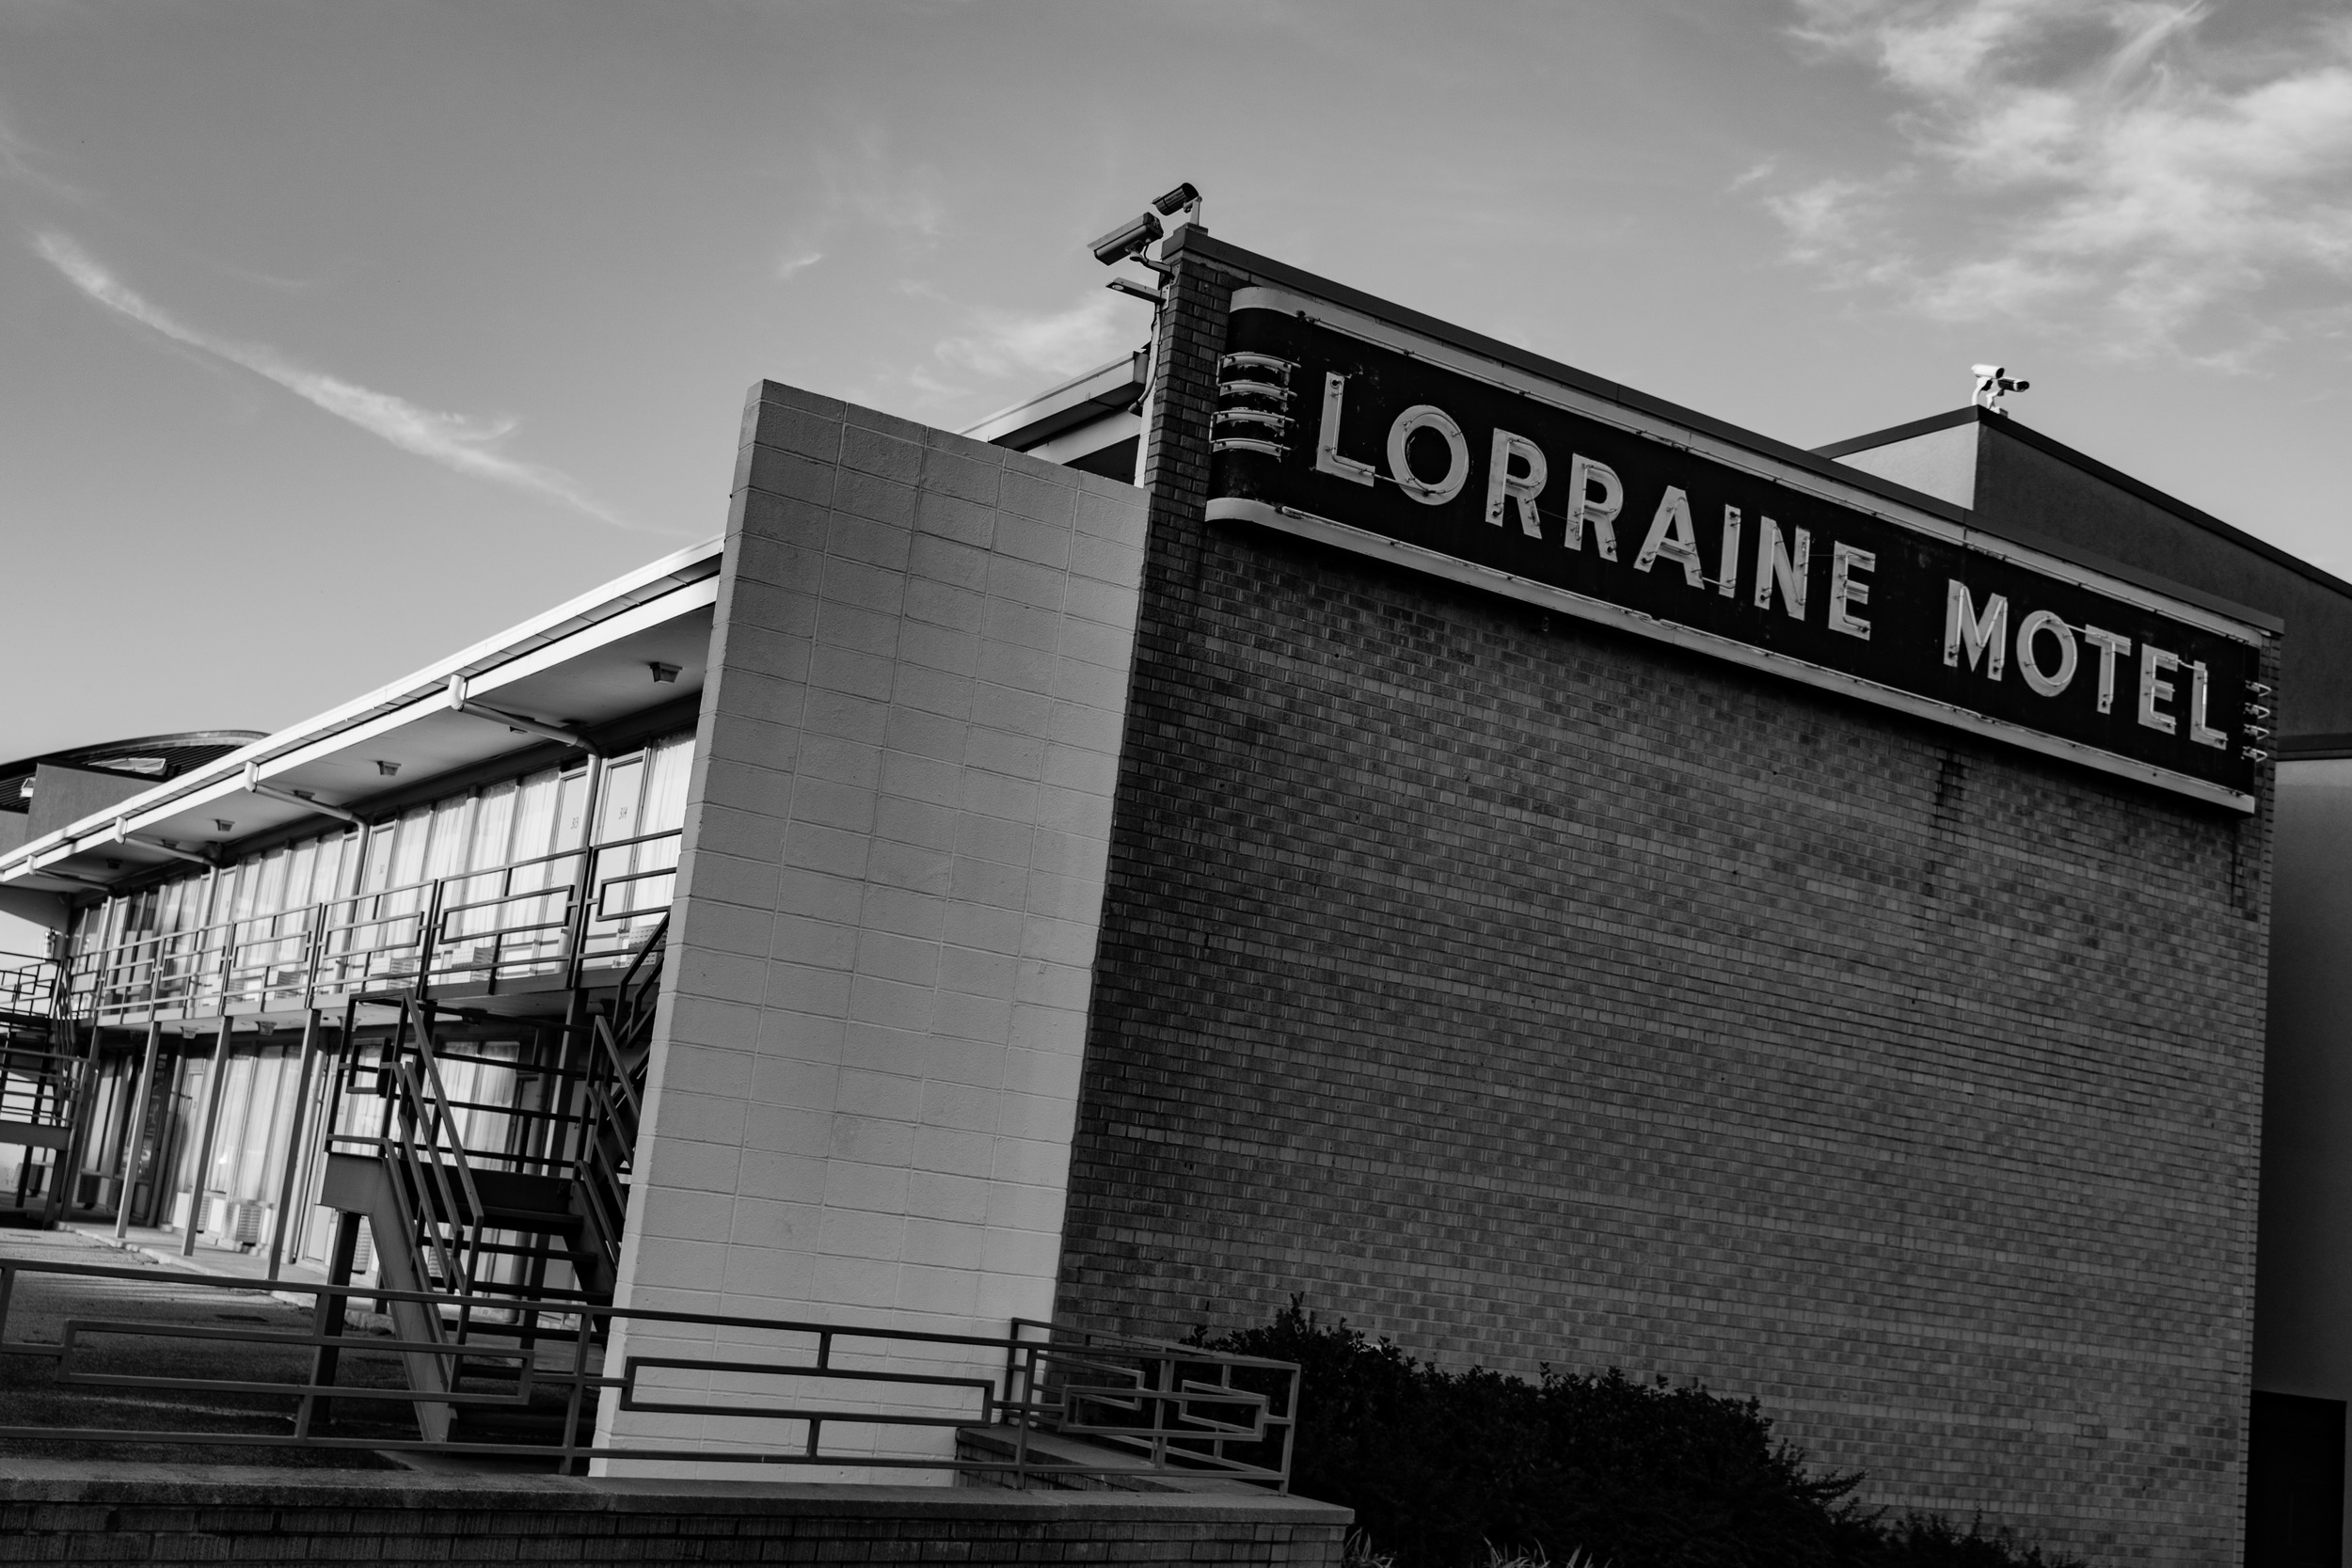 The Lorraine Motel, home of the National Civil Rights Museum.